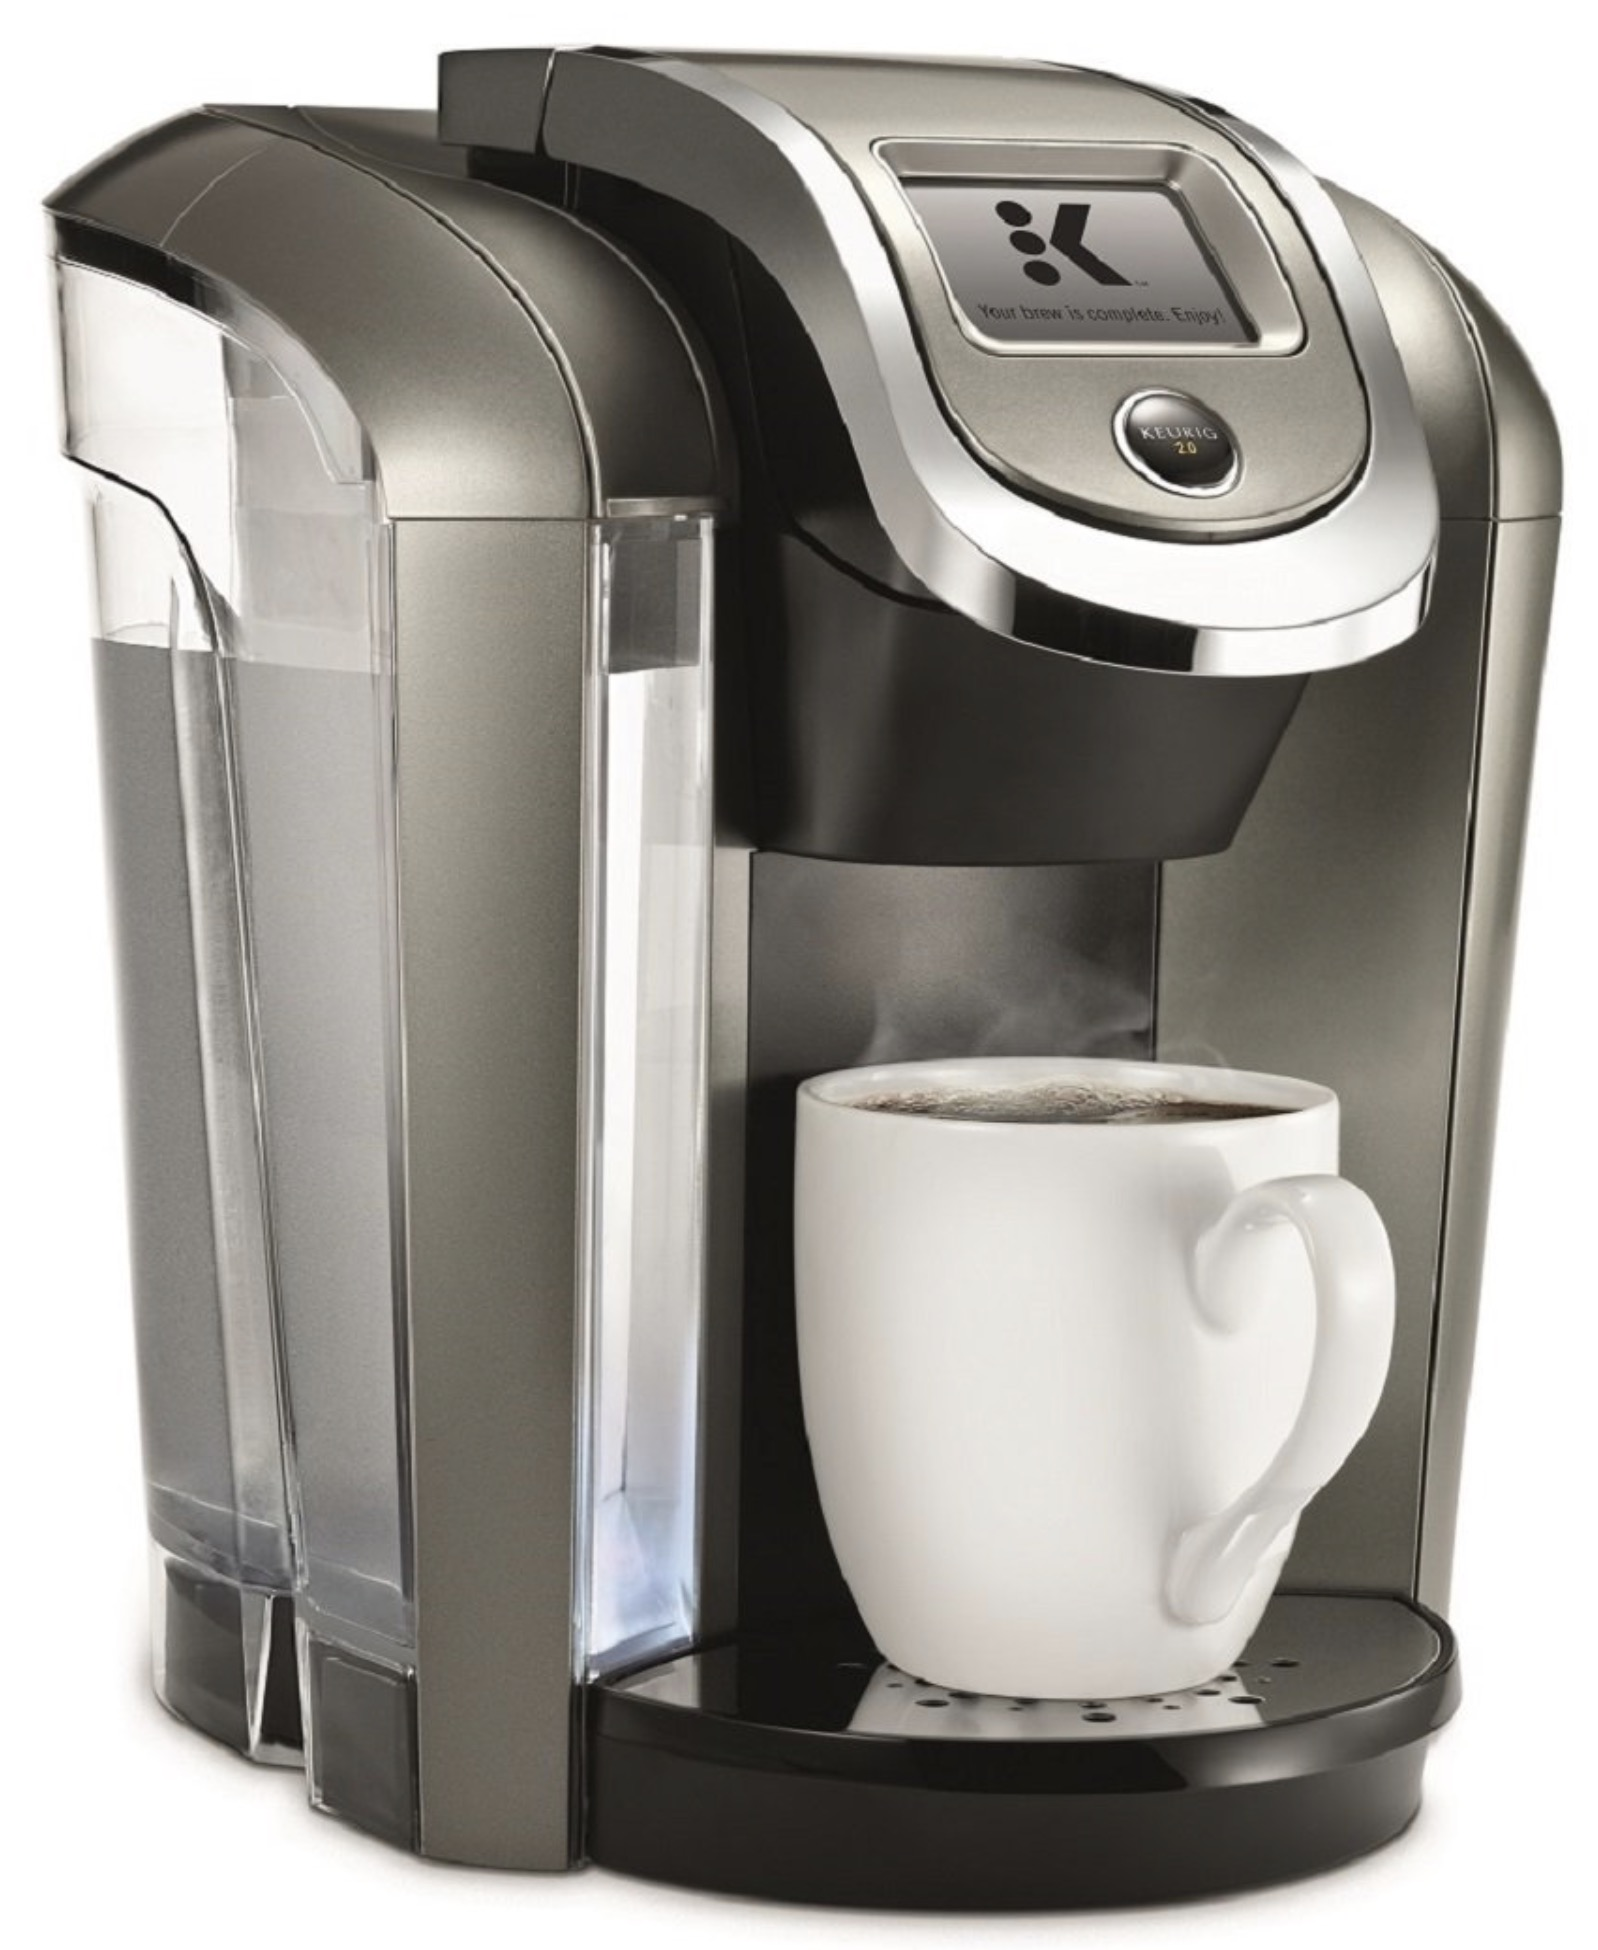 Keurig K575 Single Serve Coffee Maker Review Brownscoffeecom